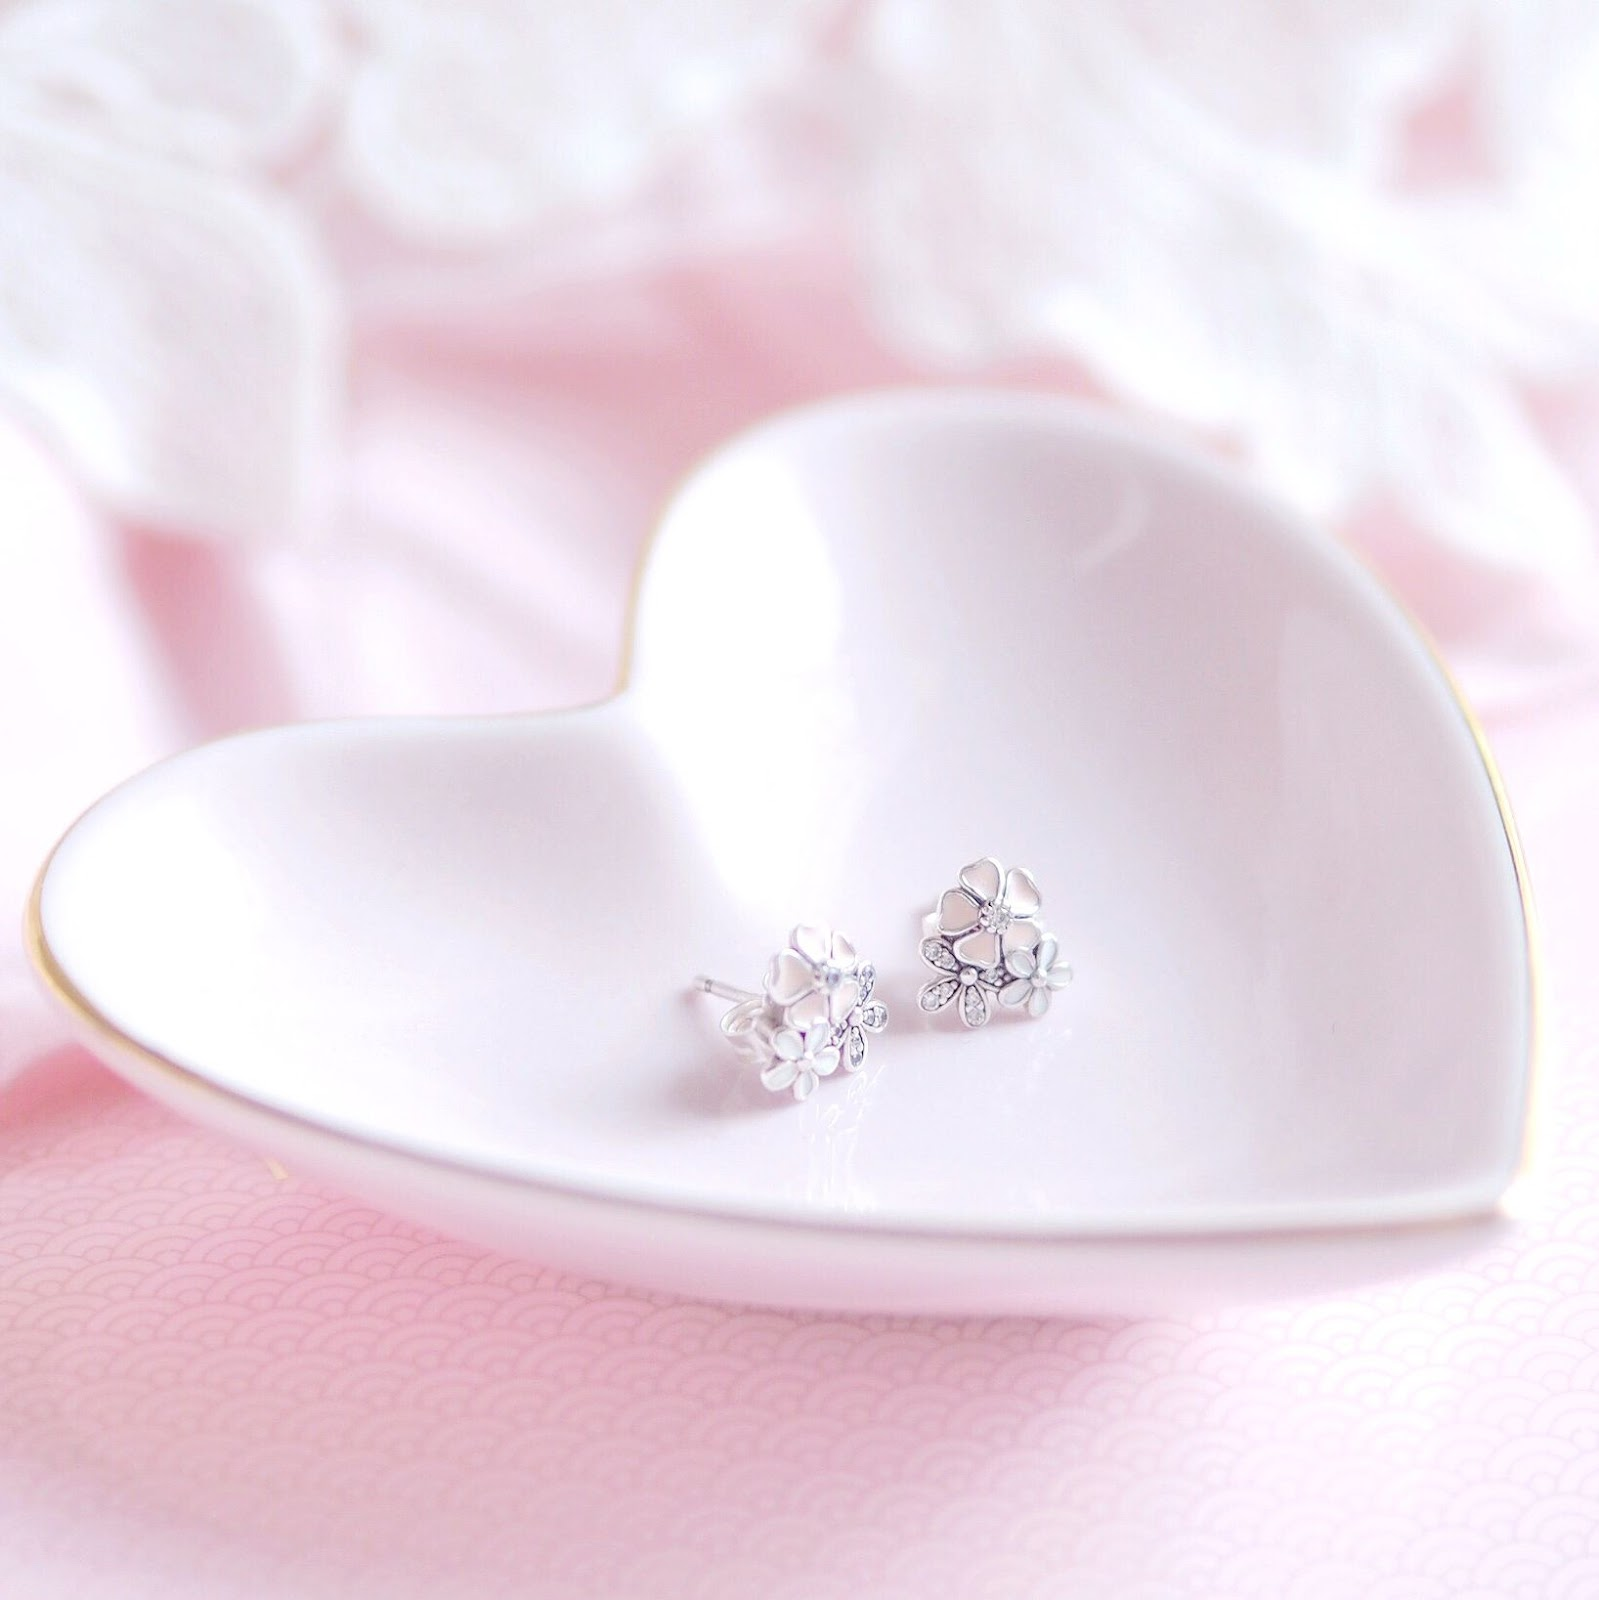 Pandora Poetic Blooms Earrings | What I Got Treated To On Christmas Day